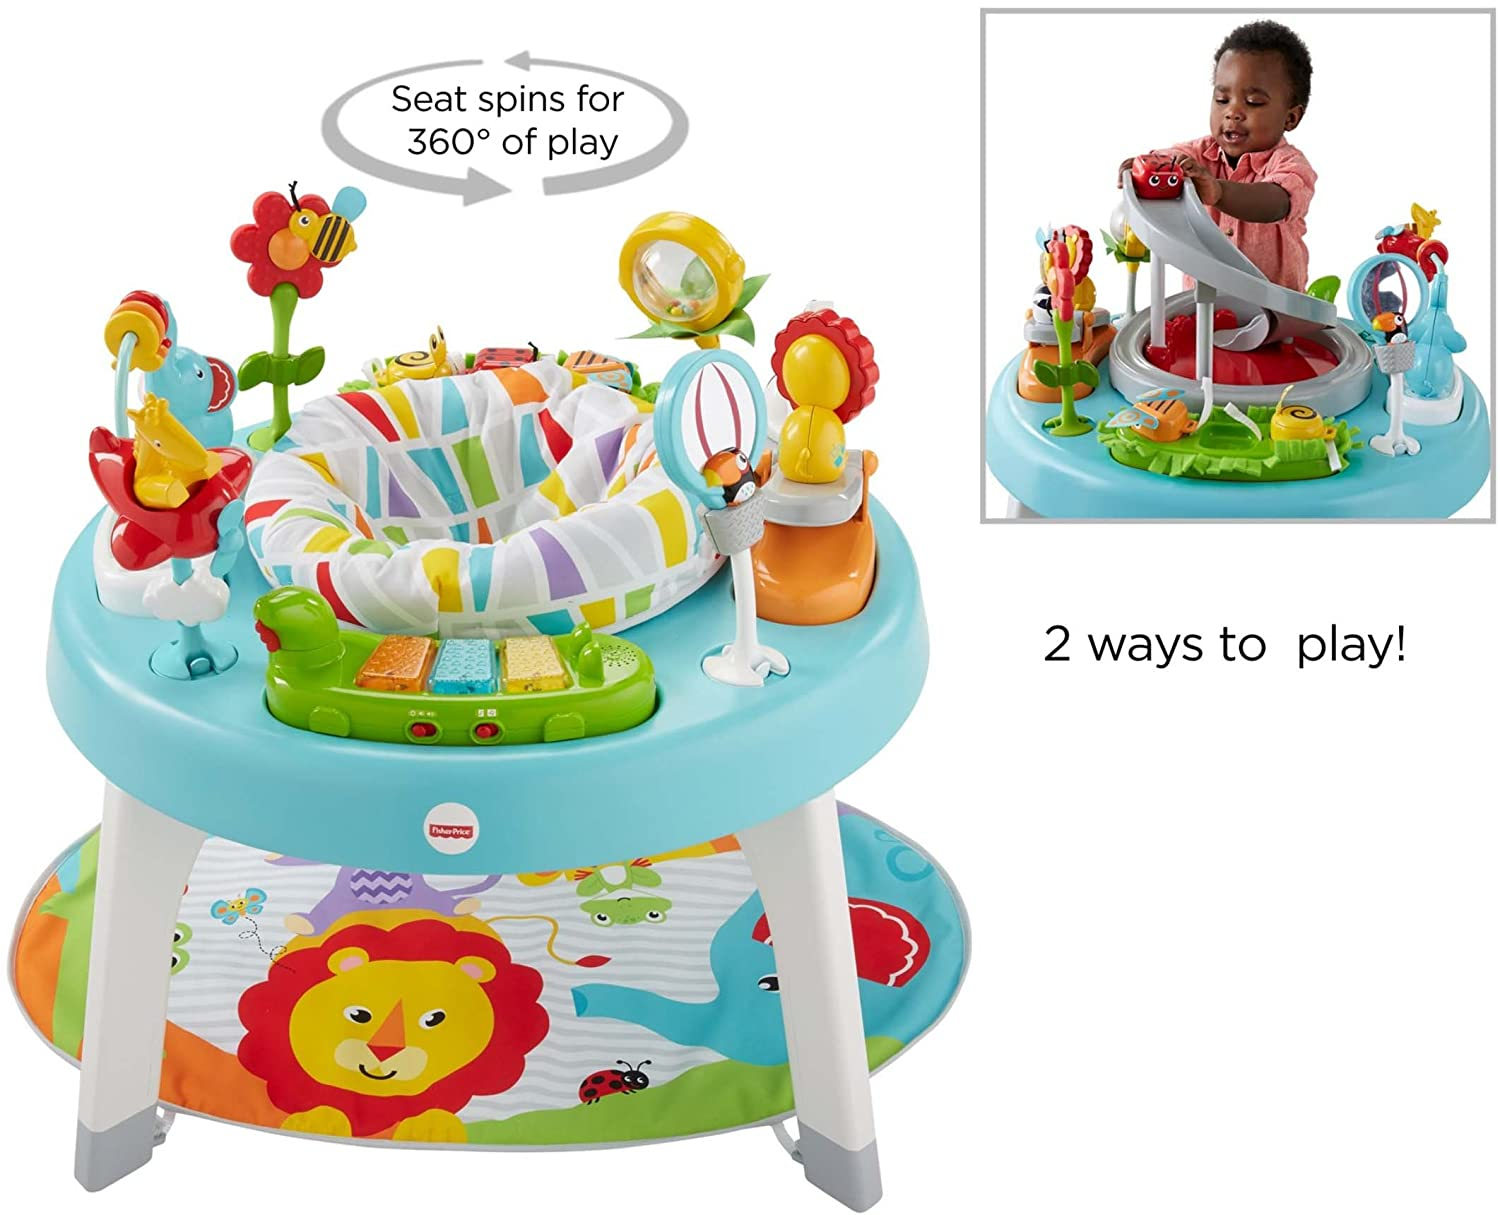 Jazzy Jungle Fisher-Price 3-in-1 Sit-to-Stand Activity Center